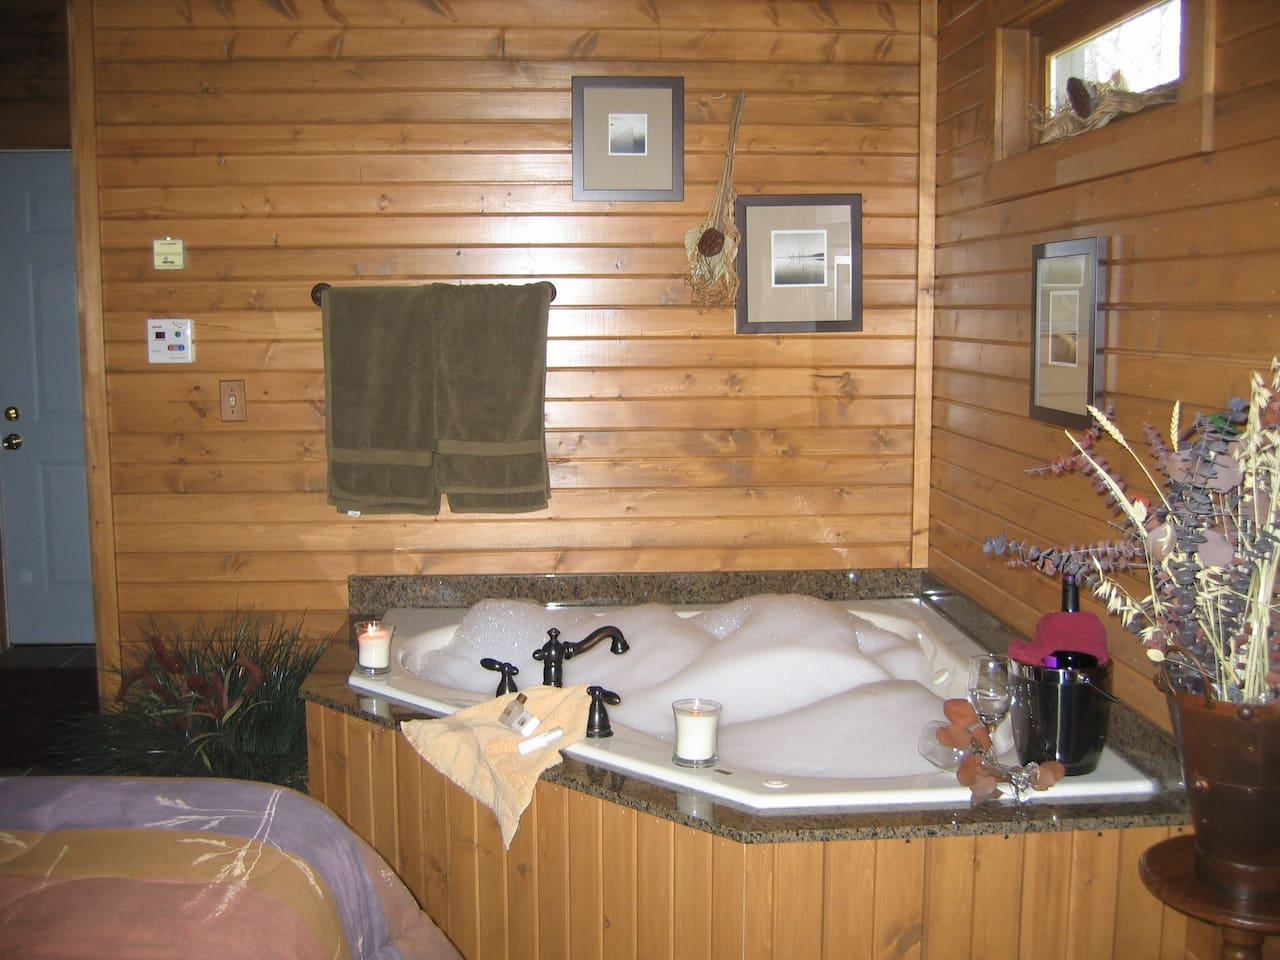 Luxury Cabin 2 person whirlpool tub